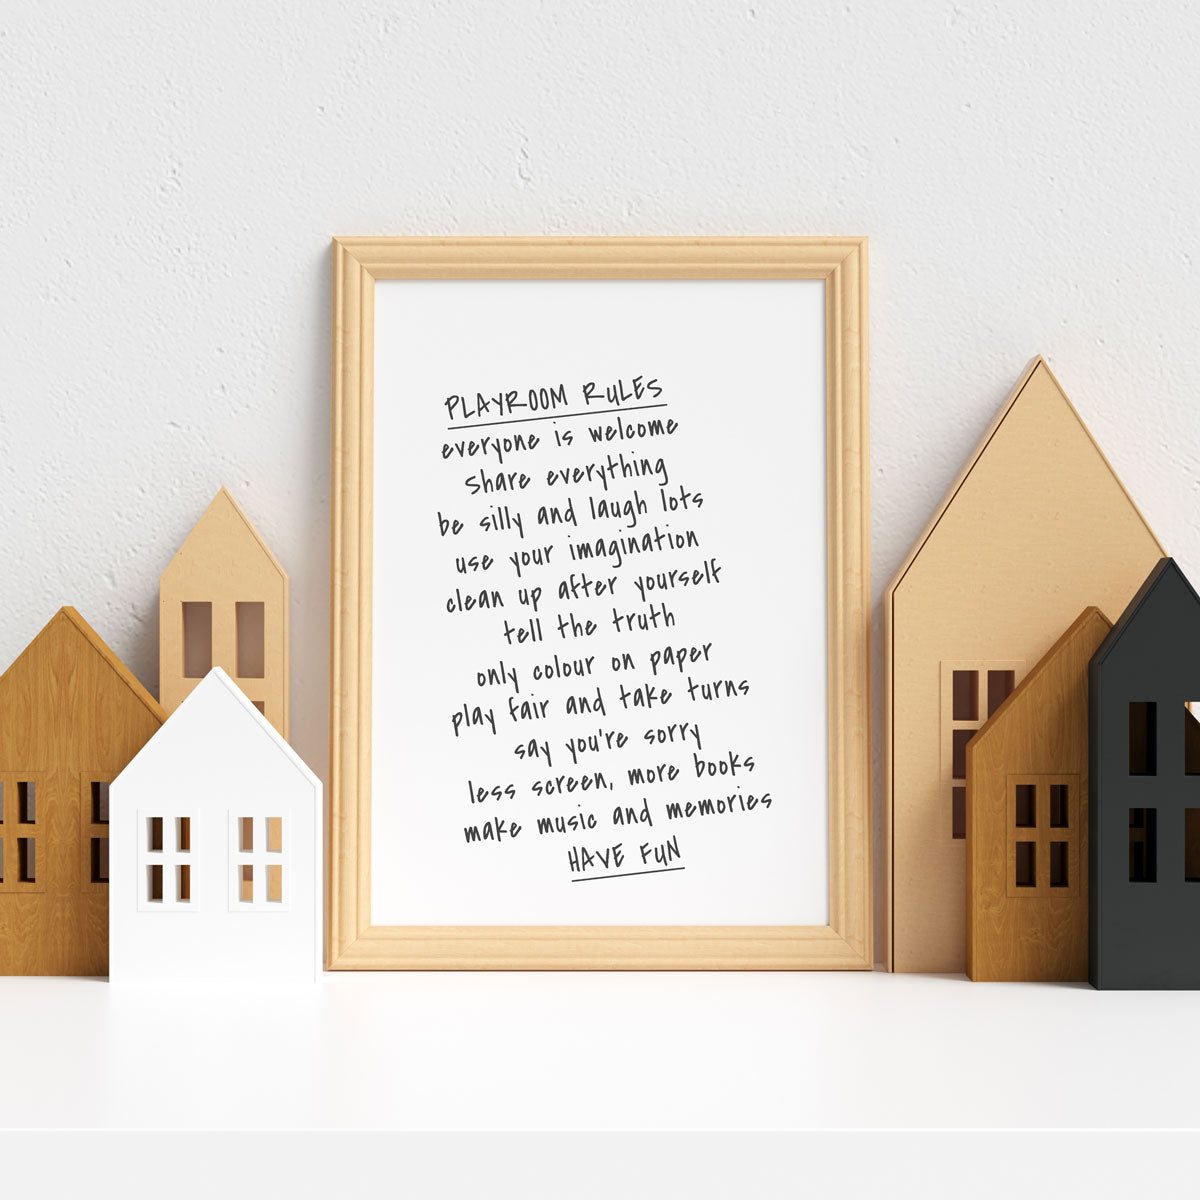 Playroom Rules Print Black And White